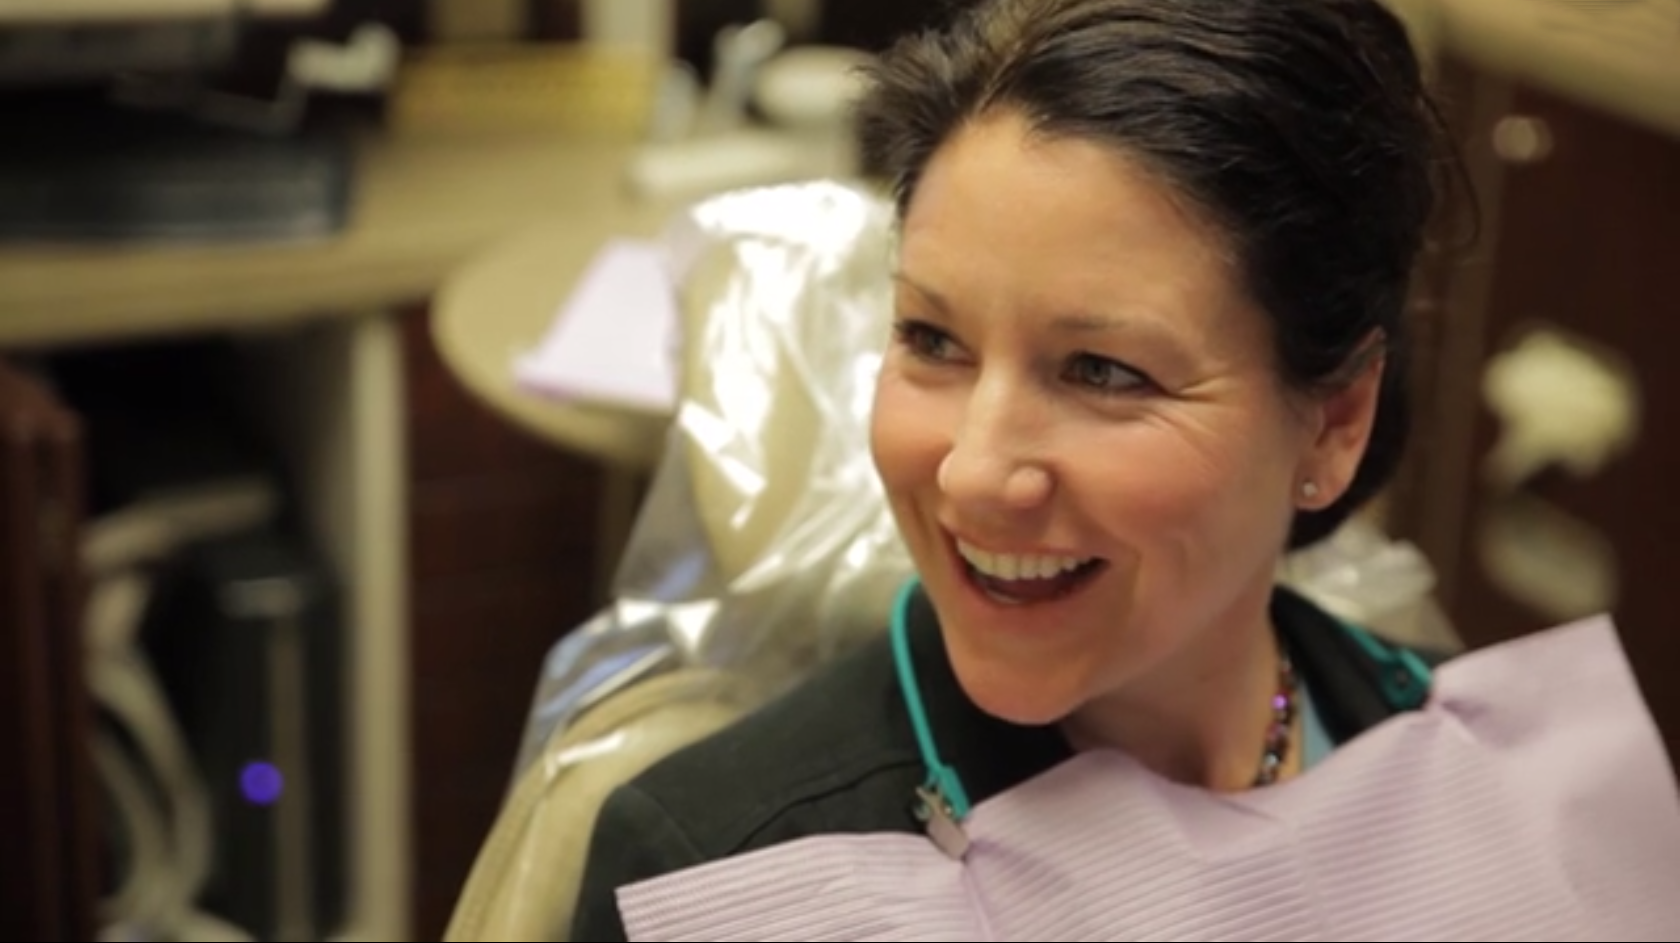 Feel comfortable at your next appointment with sedation dentistry.